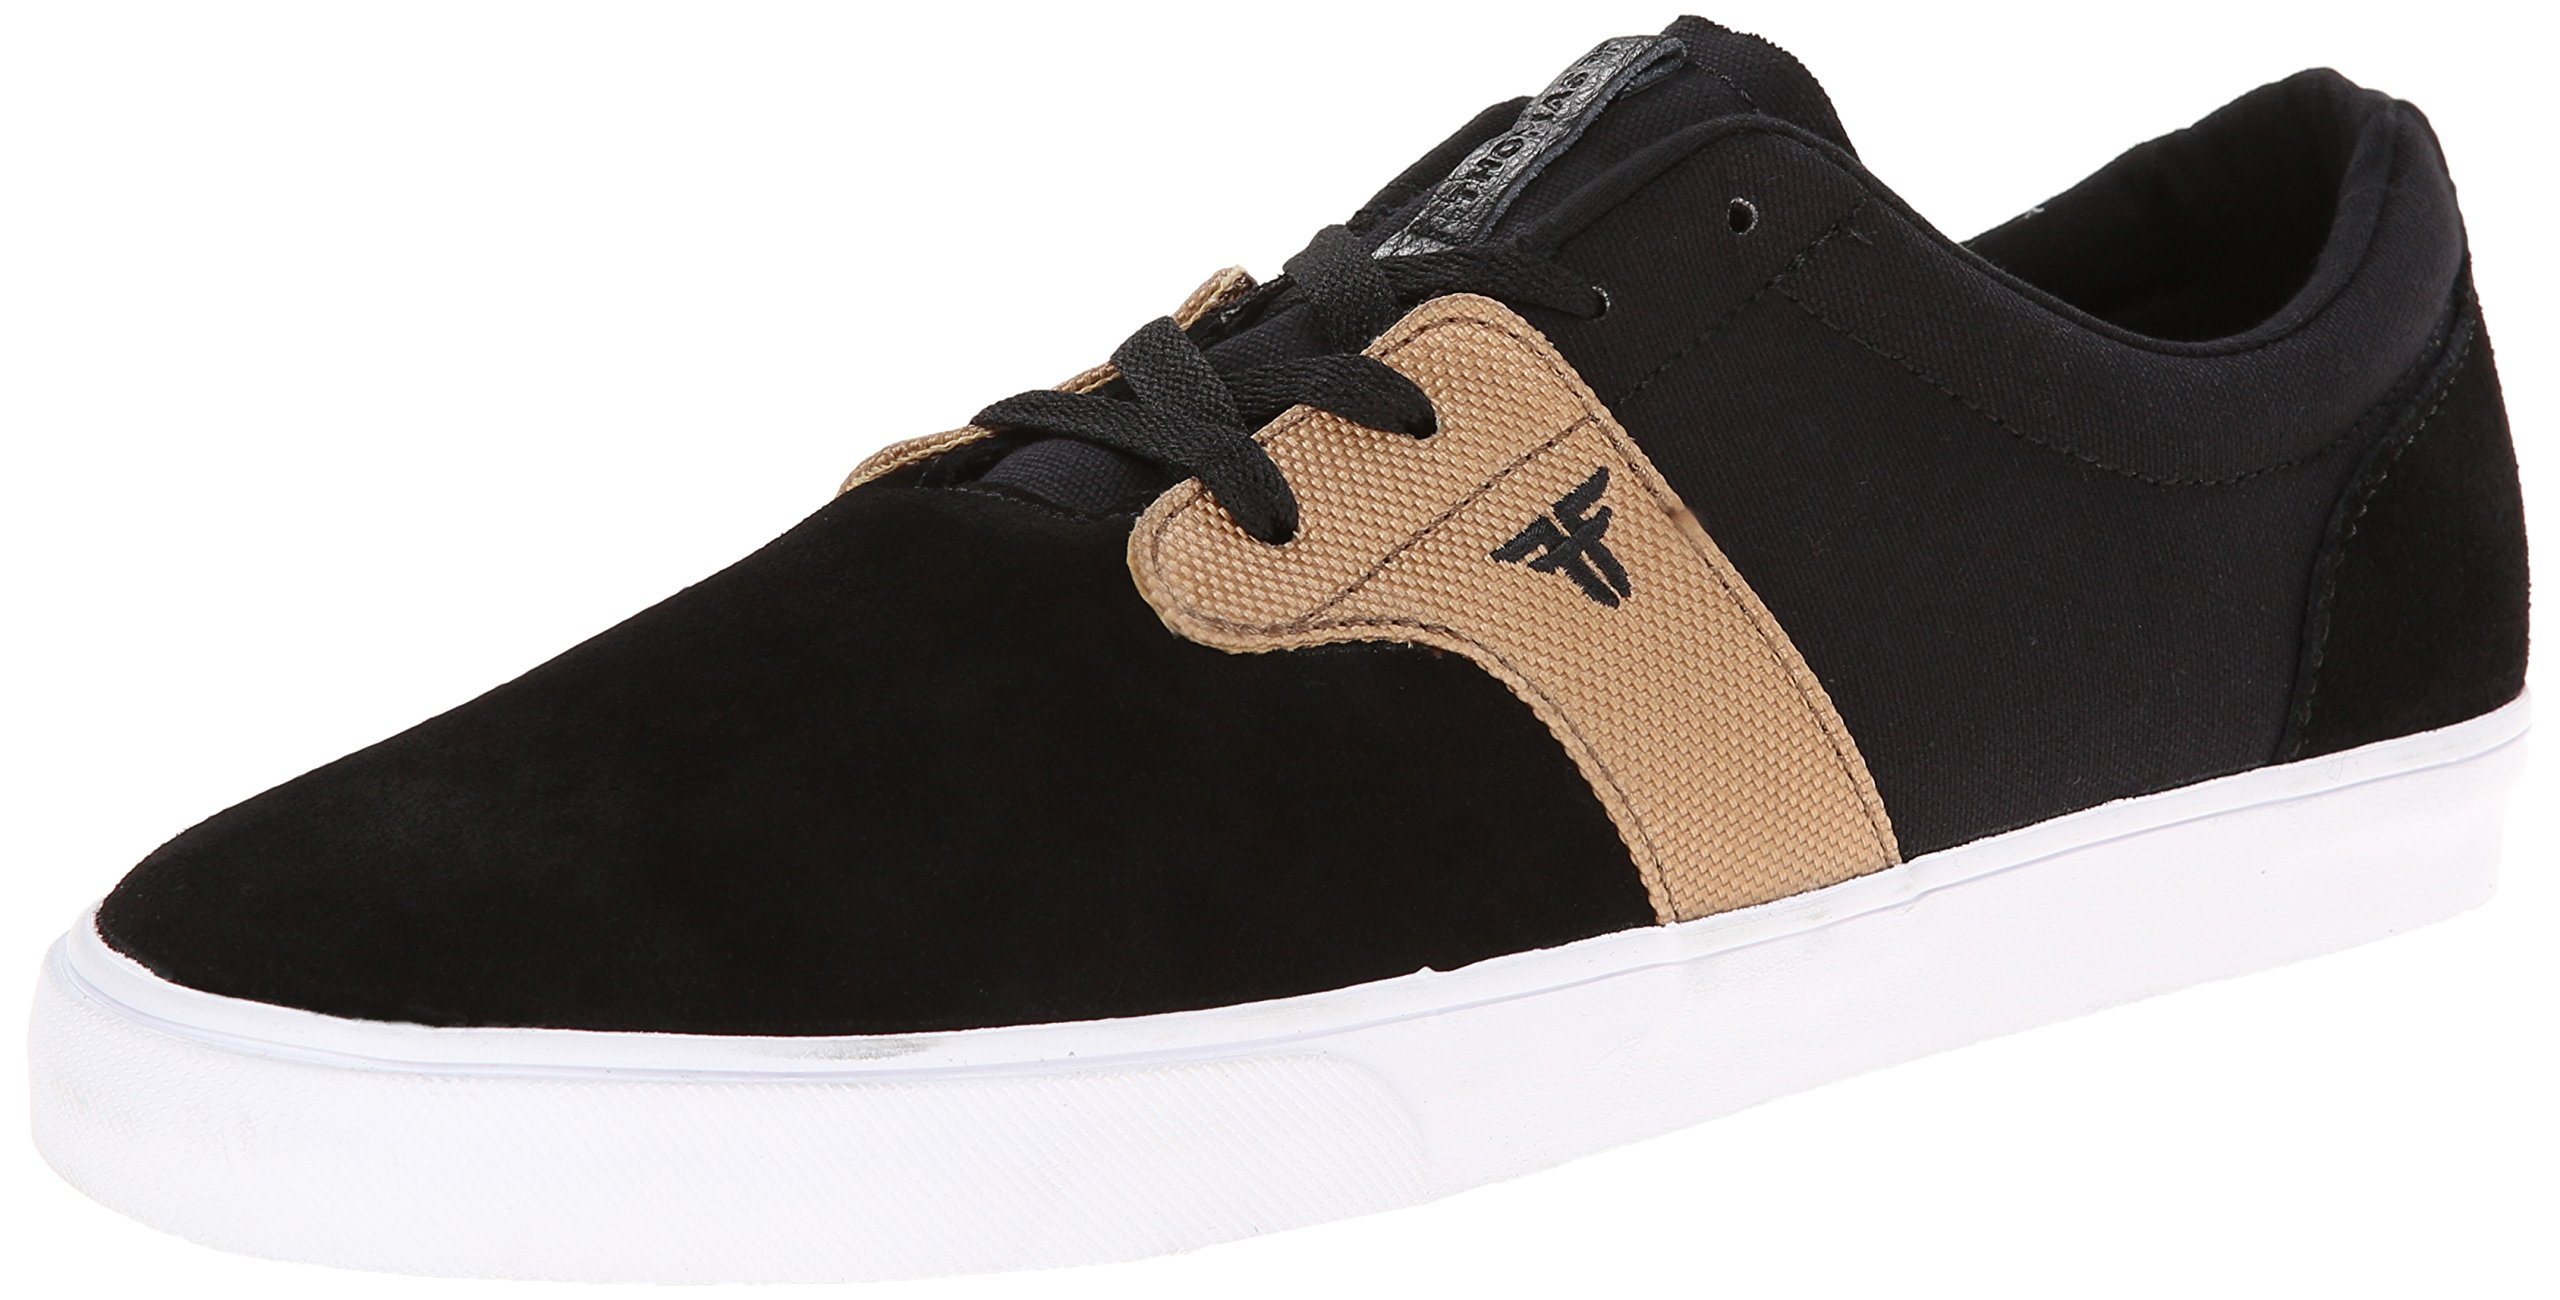 Fallen Chief XI Skate Shoe,Black/Gold,11 M US by Fallen